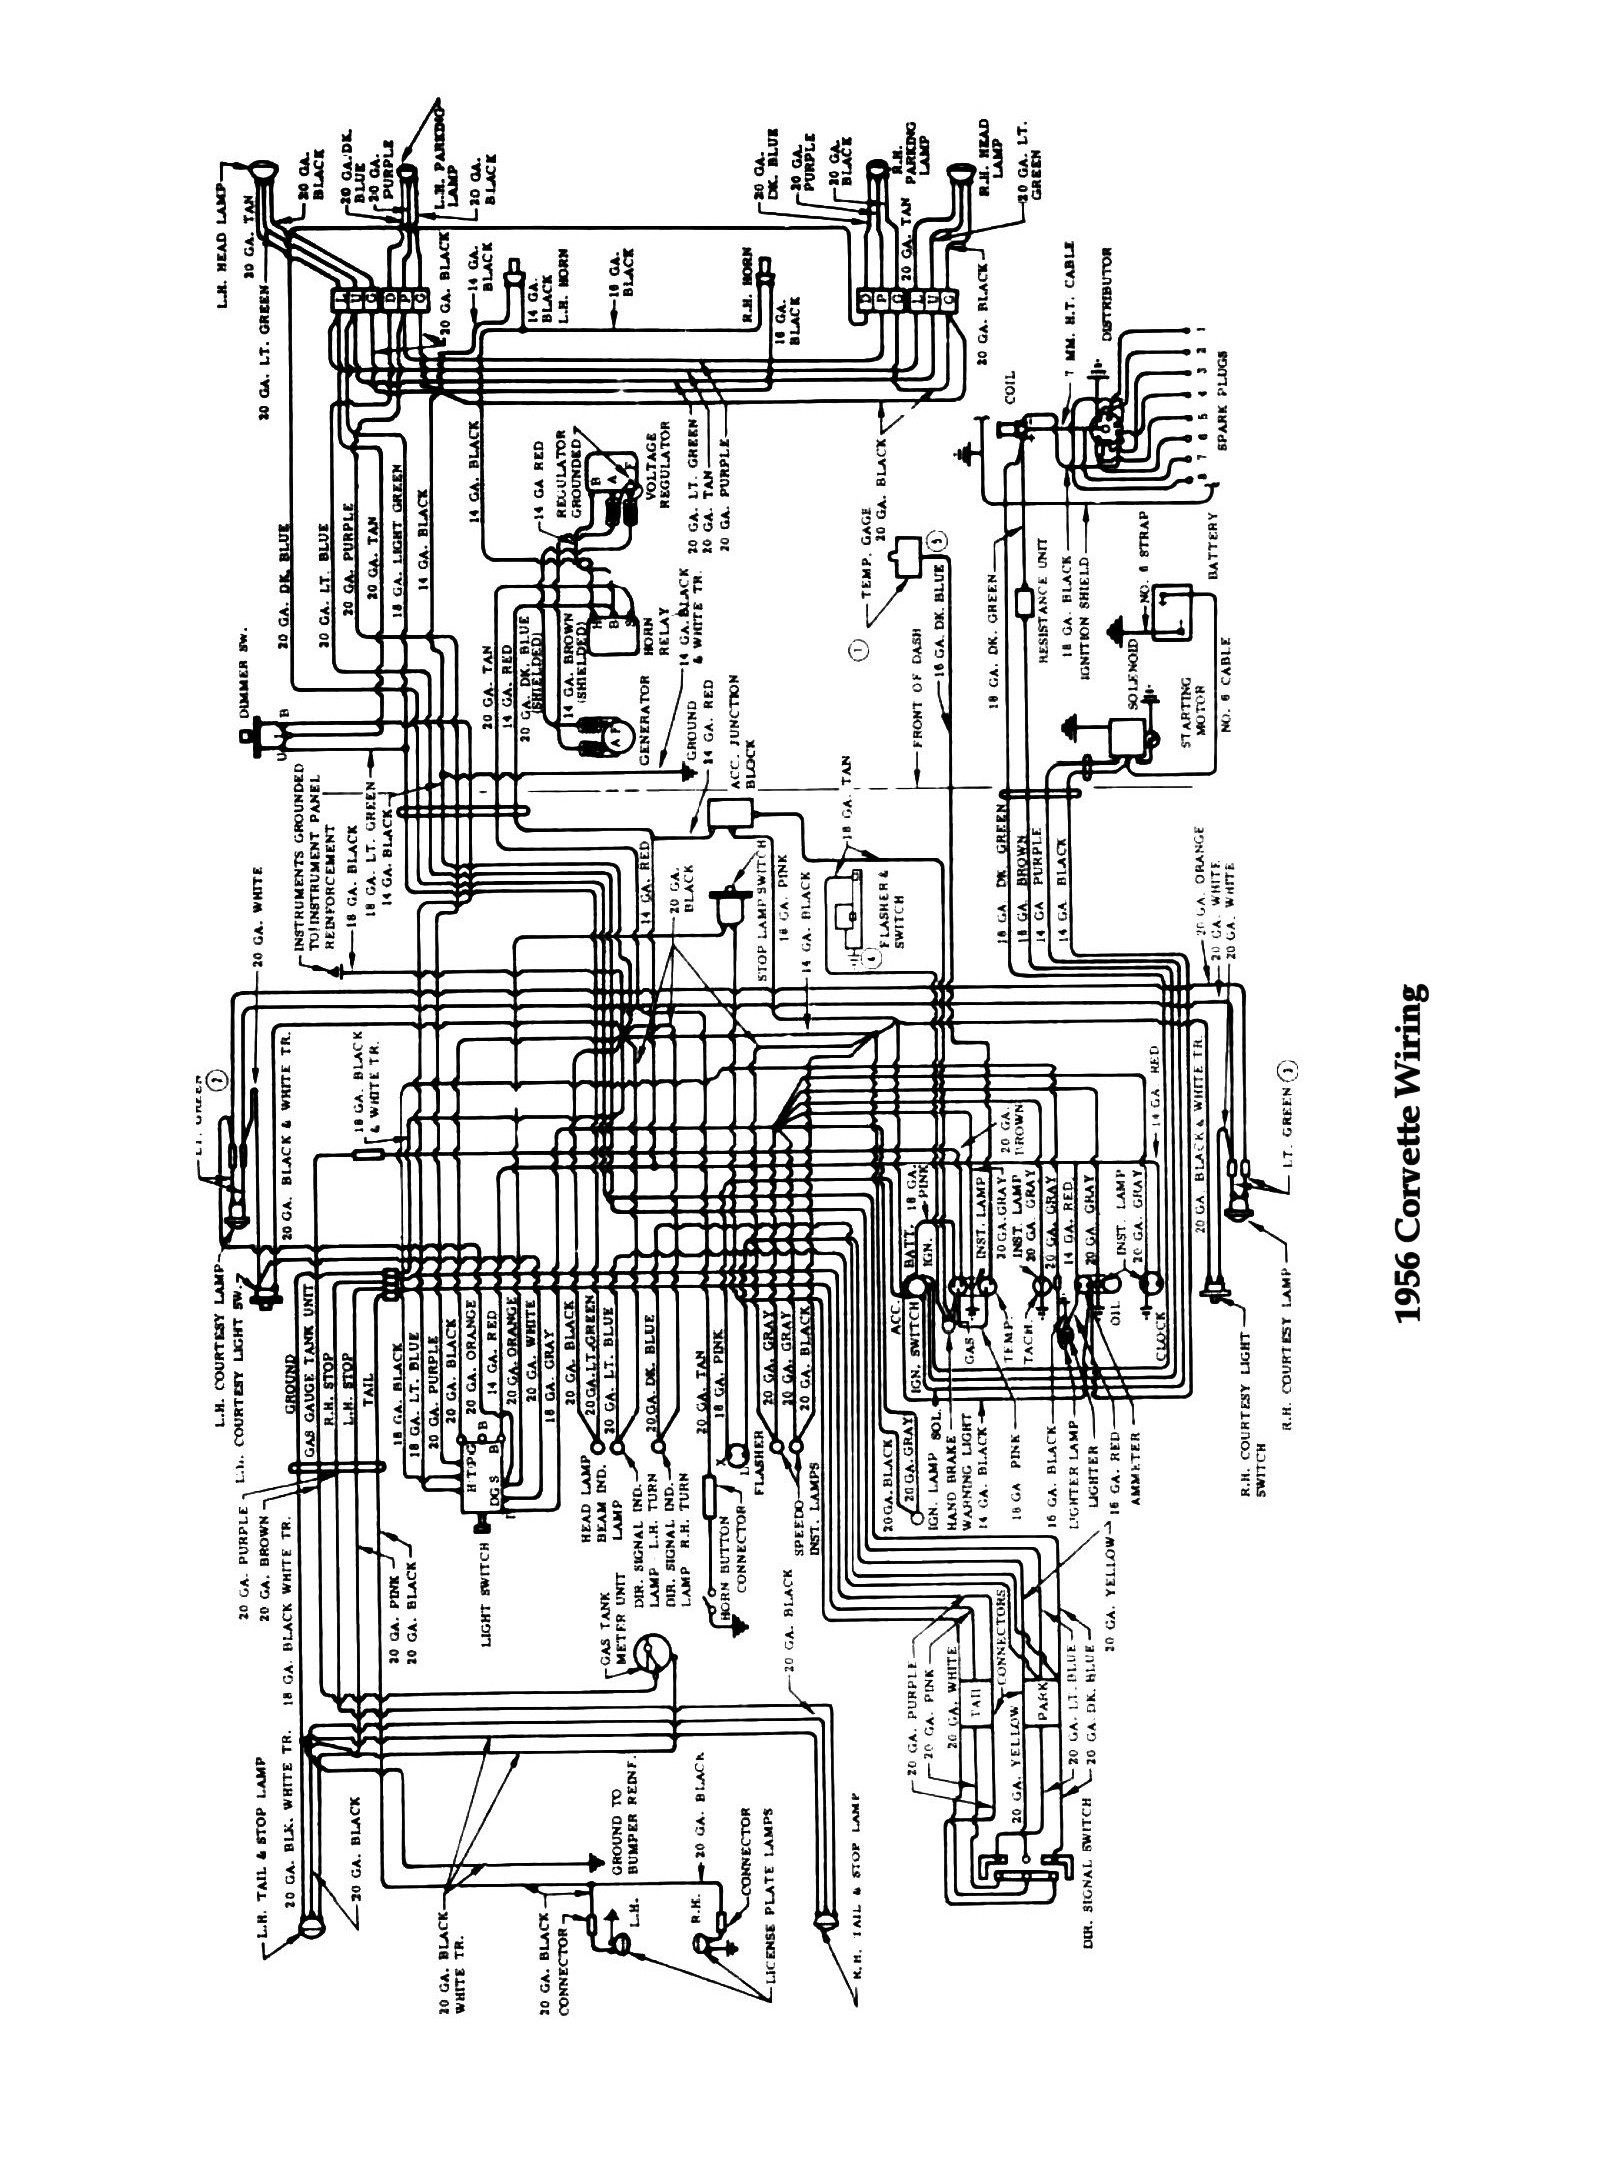 56corvette 1957 corvette wiring diagram simple wiring diagram site